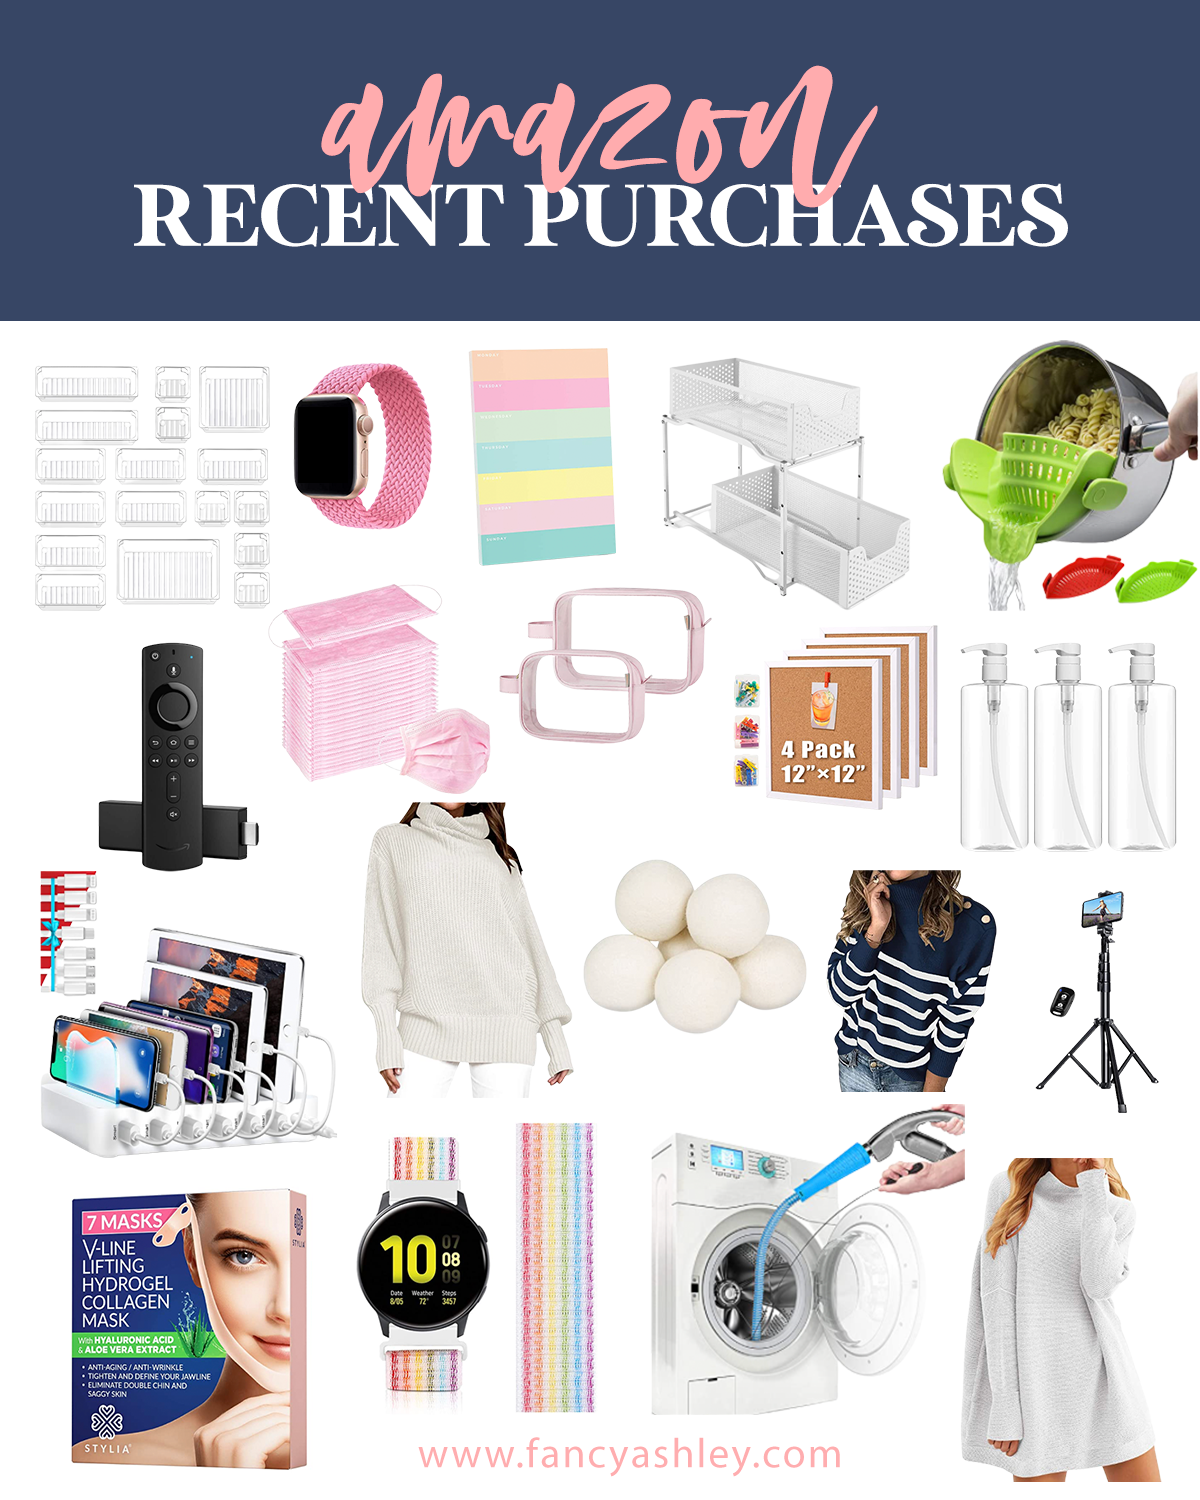 Amazon Purchases by popular Houston life and style blog, Fancy Ashley: collage image of acrylic storage containers, dryer balls, clear spray bottles, pasta strainer, camera tripod, apple watch, acrylic smartphone and smartpad charging station, blue and white sweater, grey turtleneck sweater, grey tunic sweater, cork boards, Amazon fire stick, rainbow watch band, white metal organizing bins, dryer vent cleaner, Hydrogel mask, and clear storage bags.